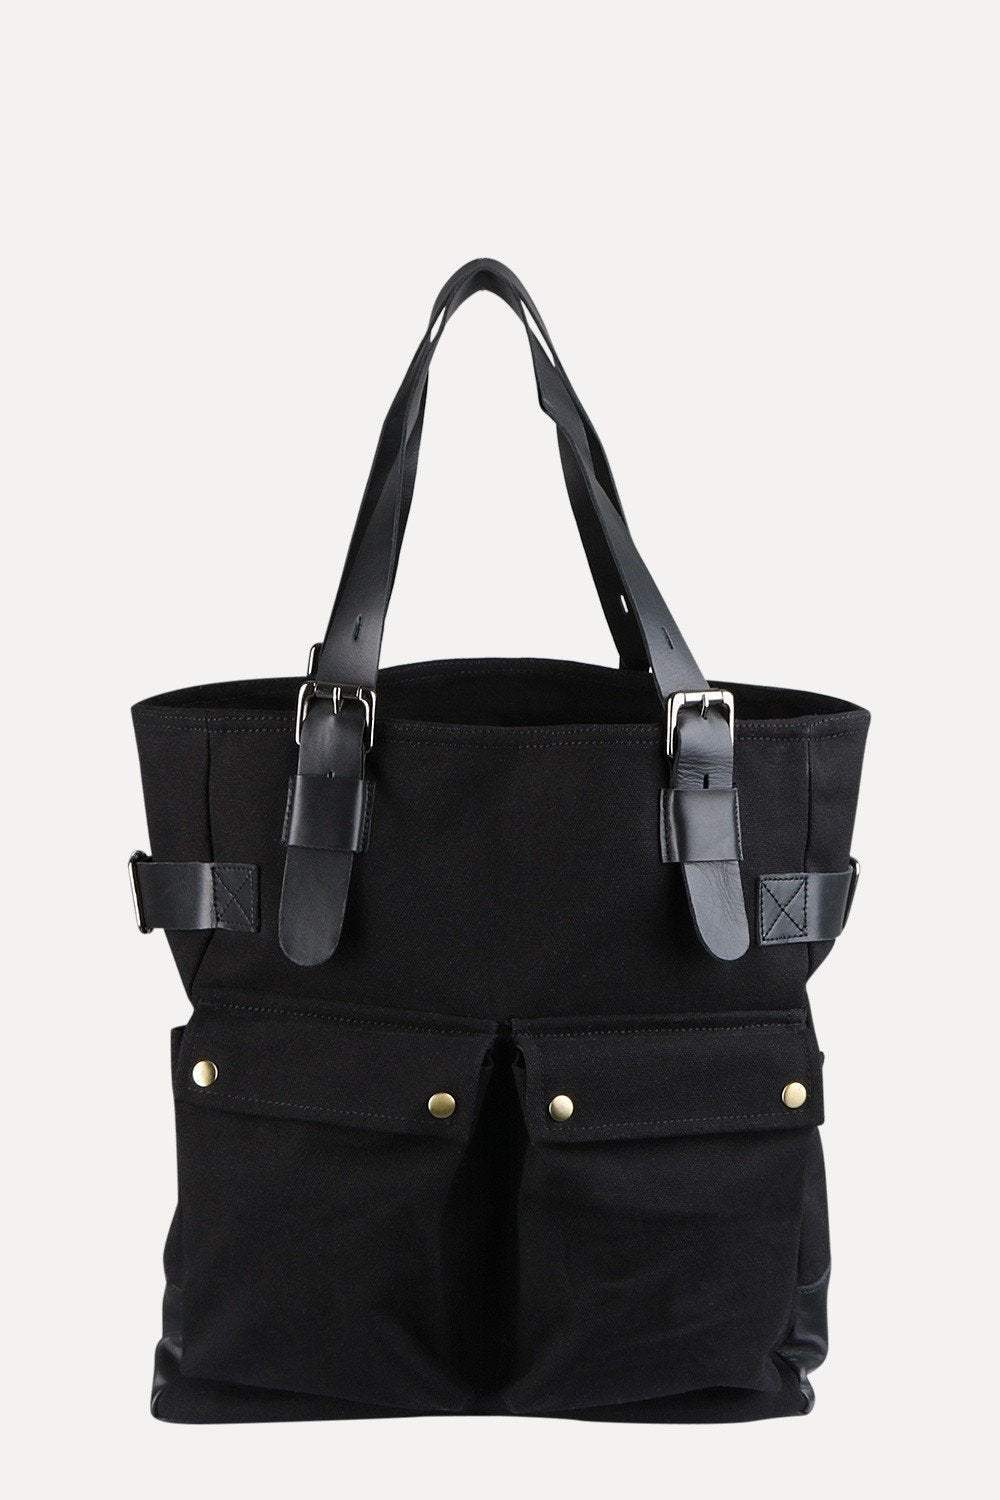 Buy Online Black Twill Canvas Tote Bags Online in India at Zobello 1720a7e03024f